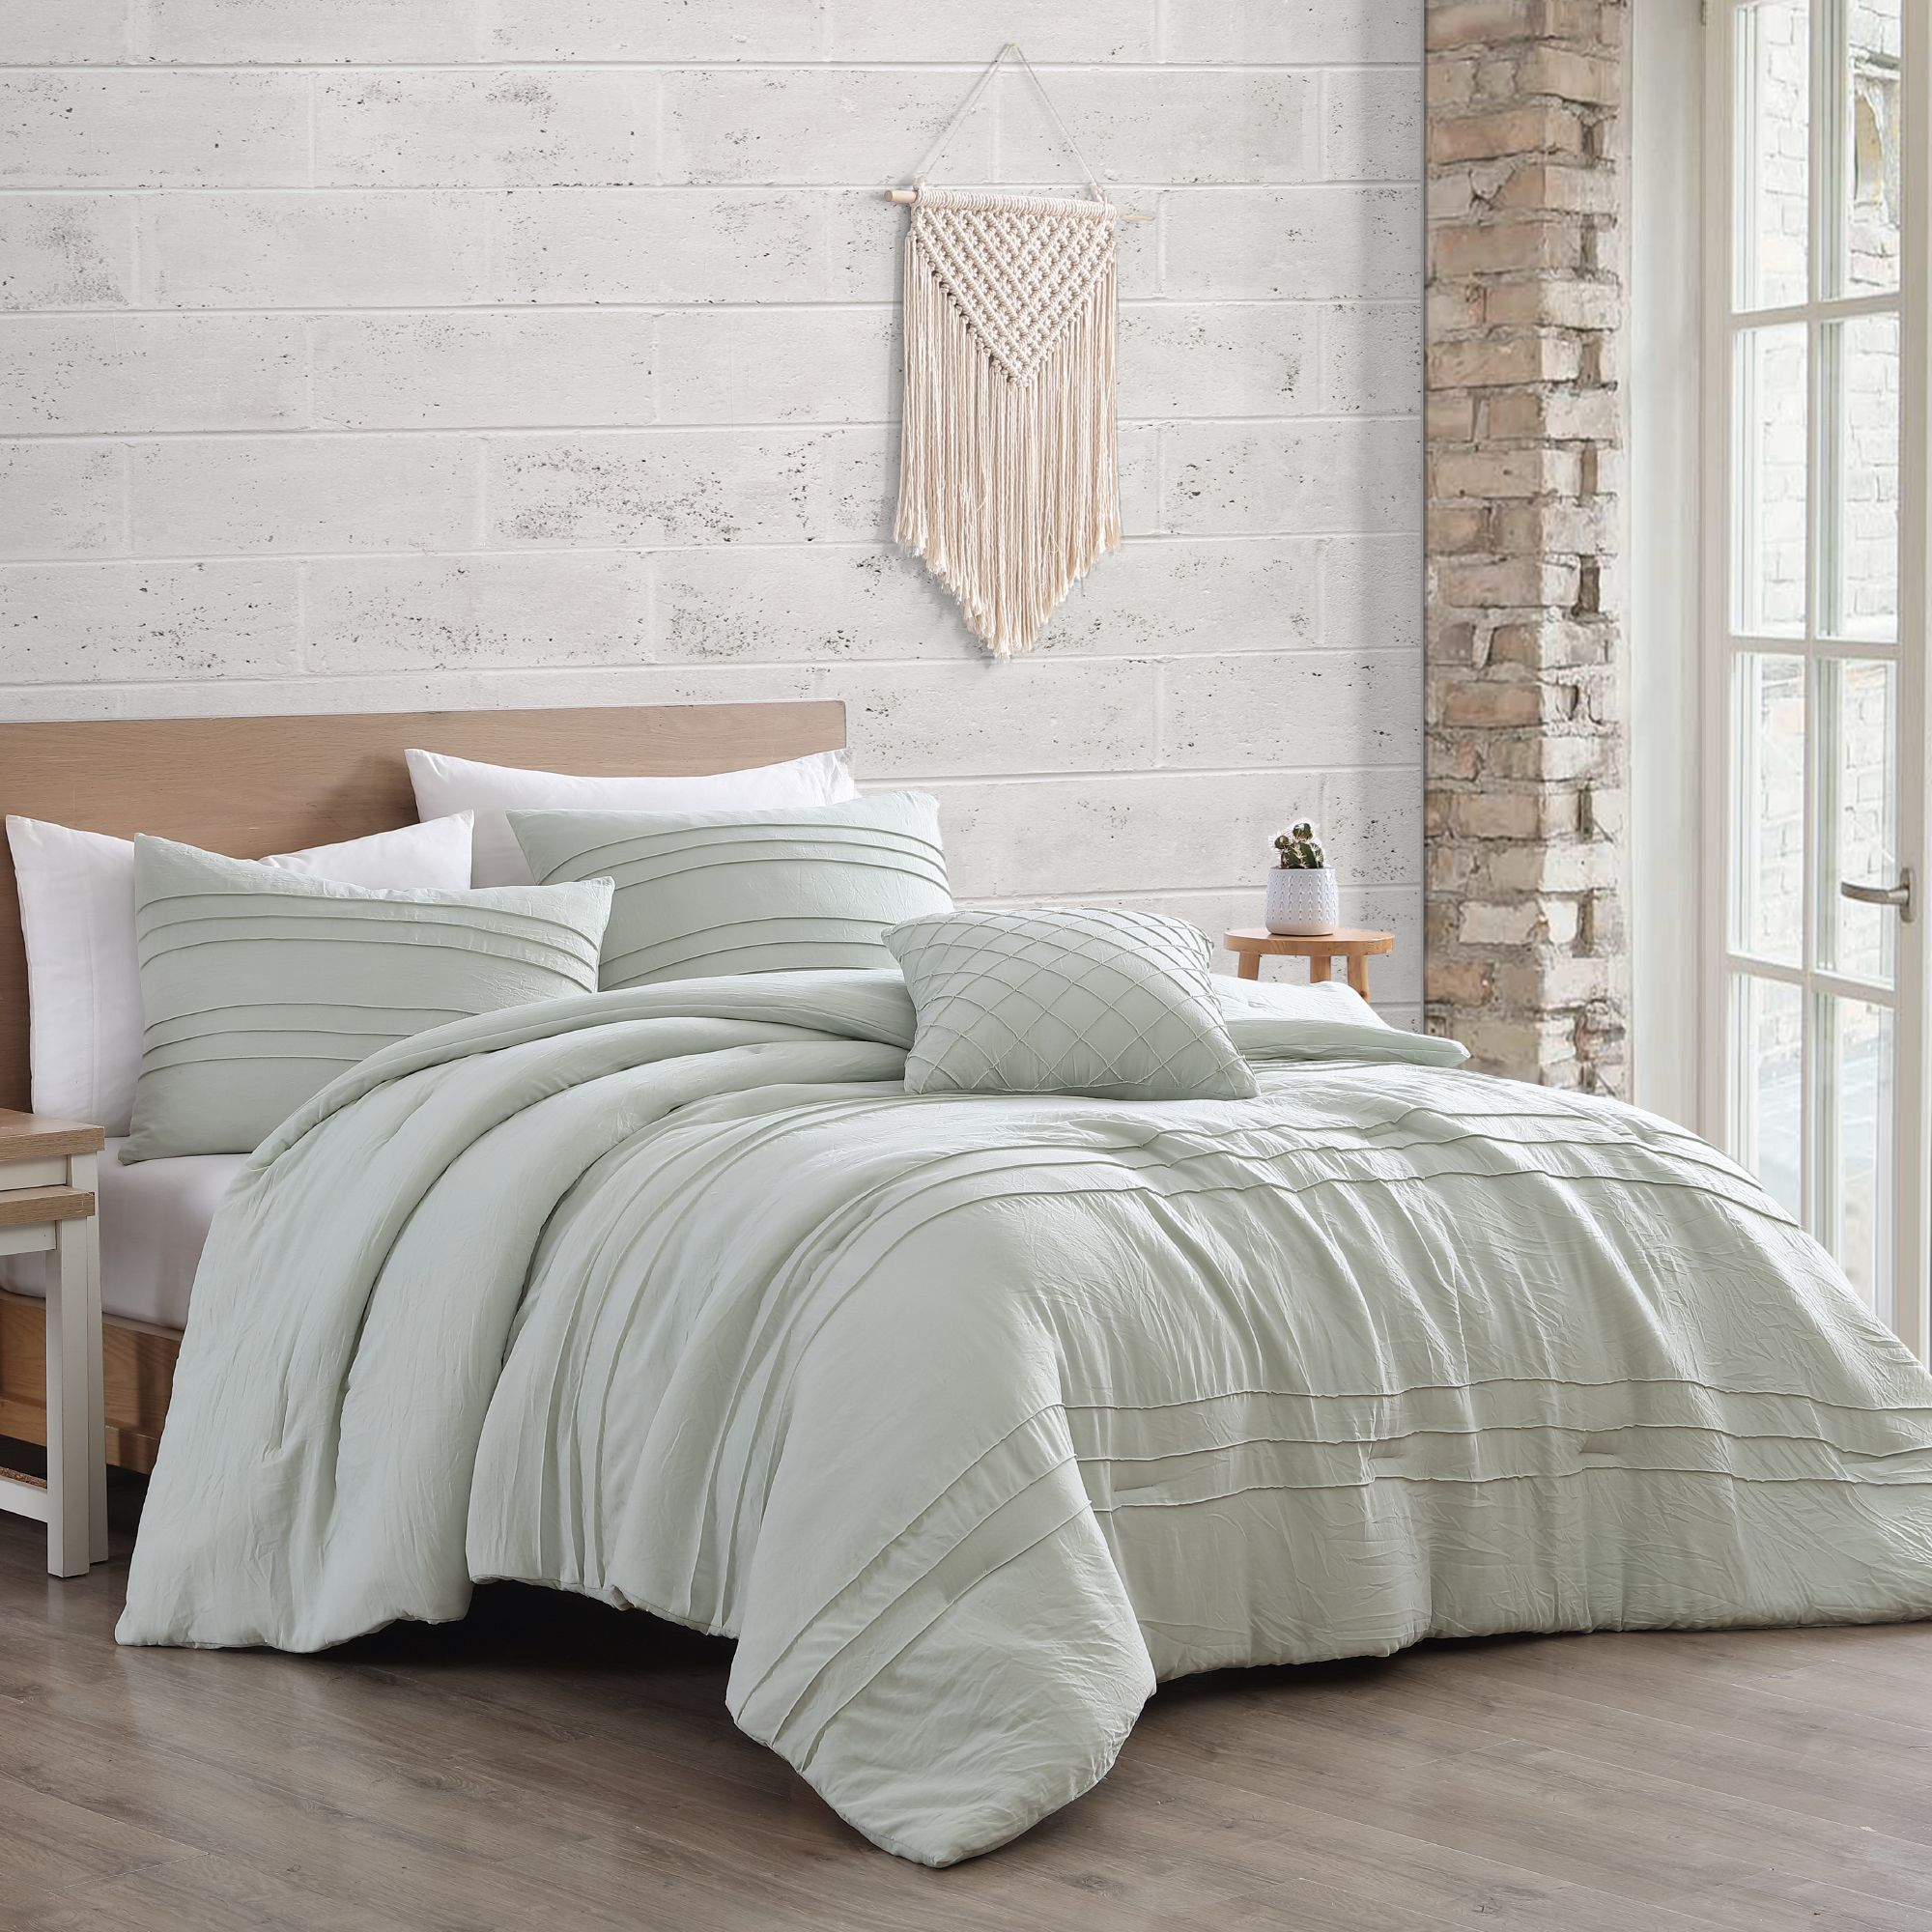 Taylor Green 4 Piece Comforter Set $85.00